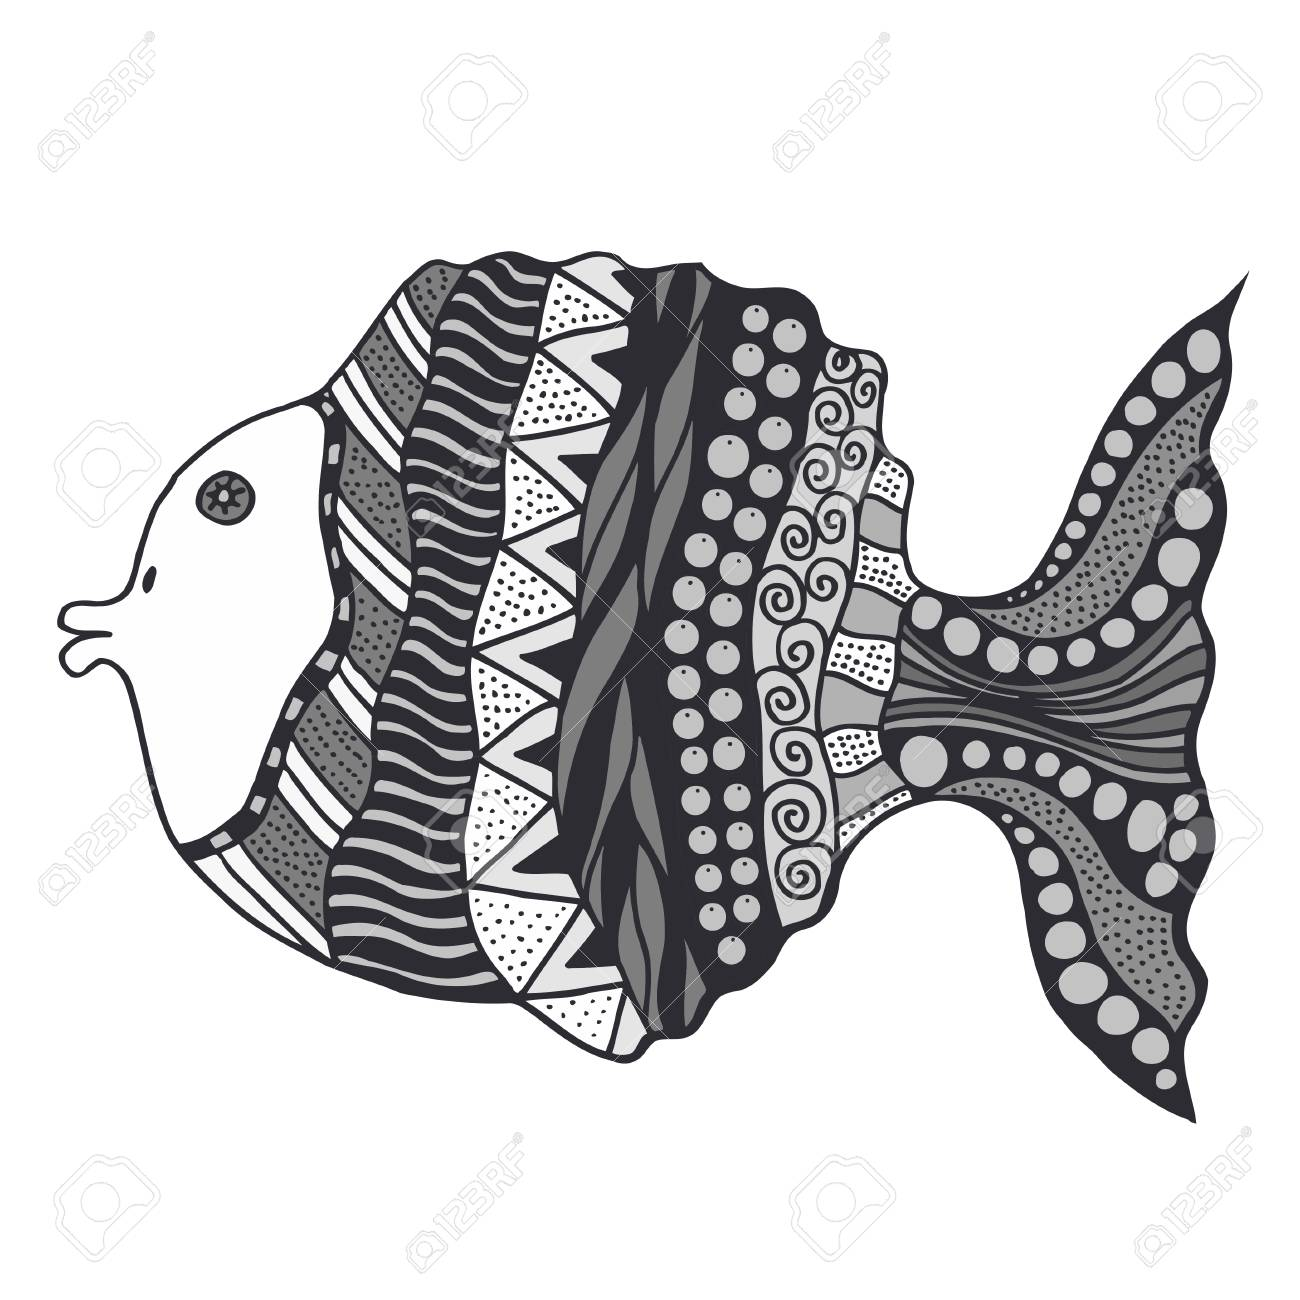 vector vector hand drawn doodle outline fish illustration decorative fish drawing with abstract ornaments - Outline Of Fish